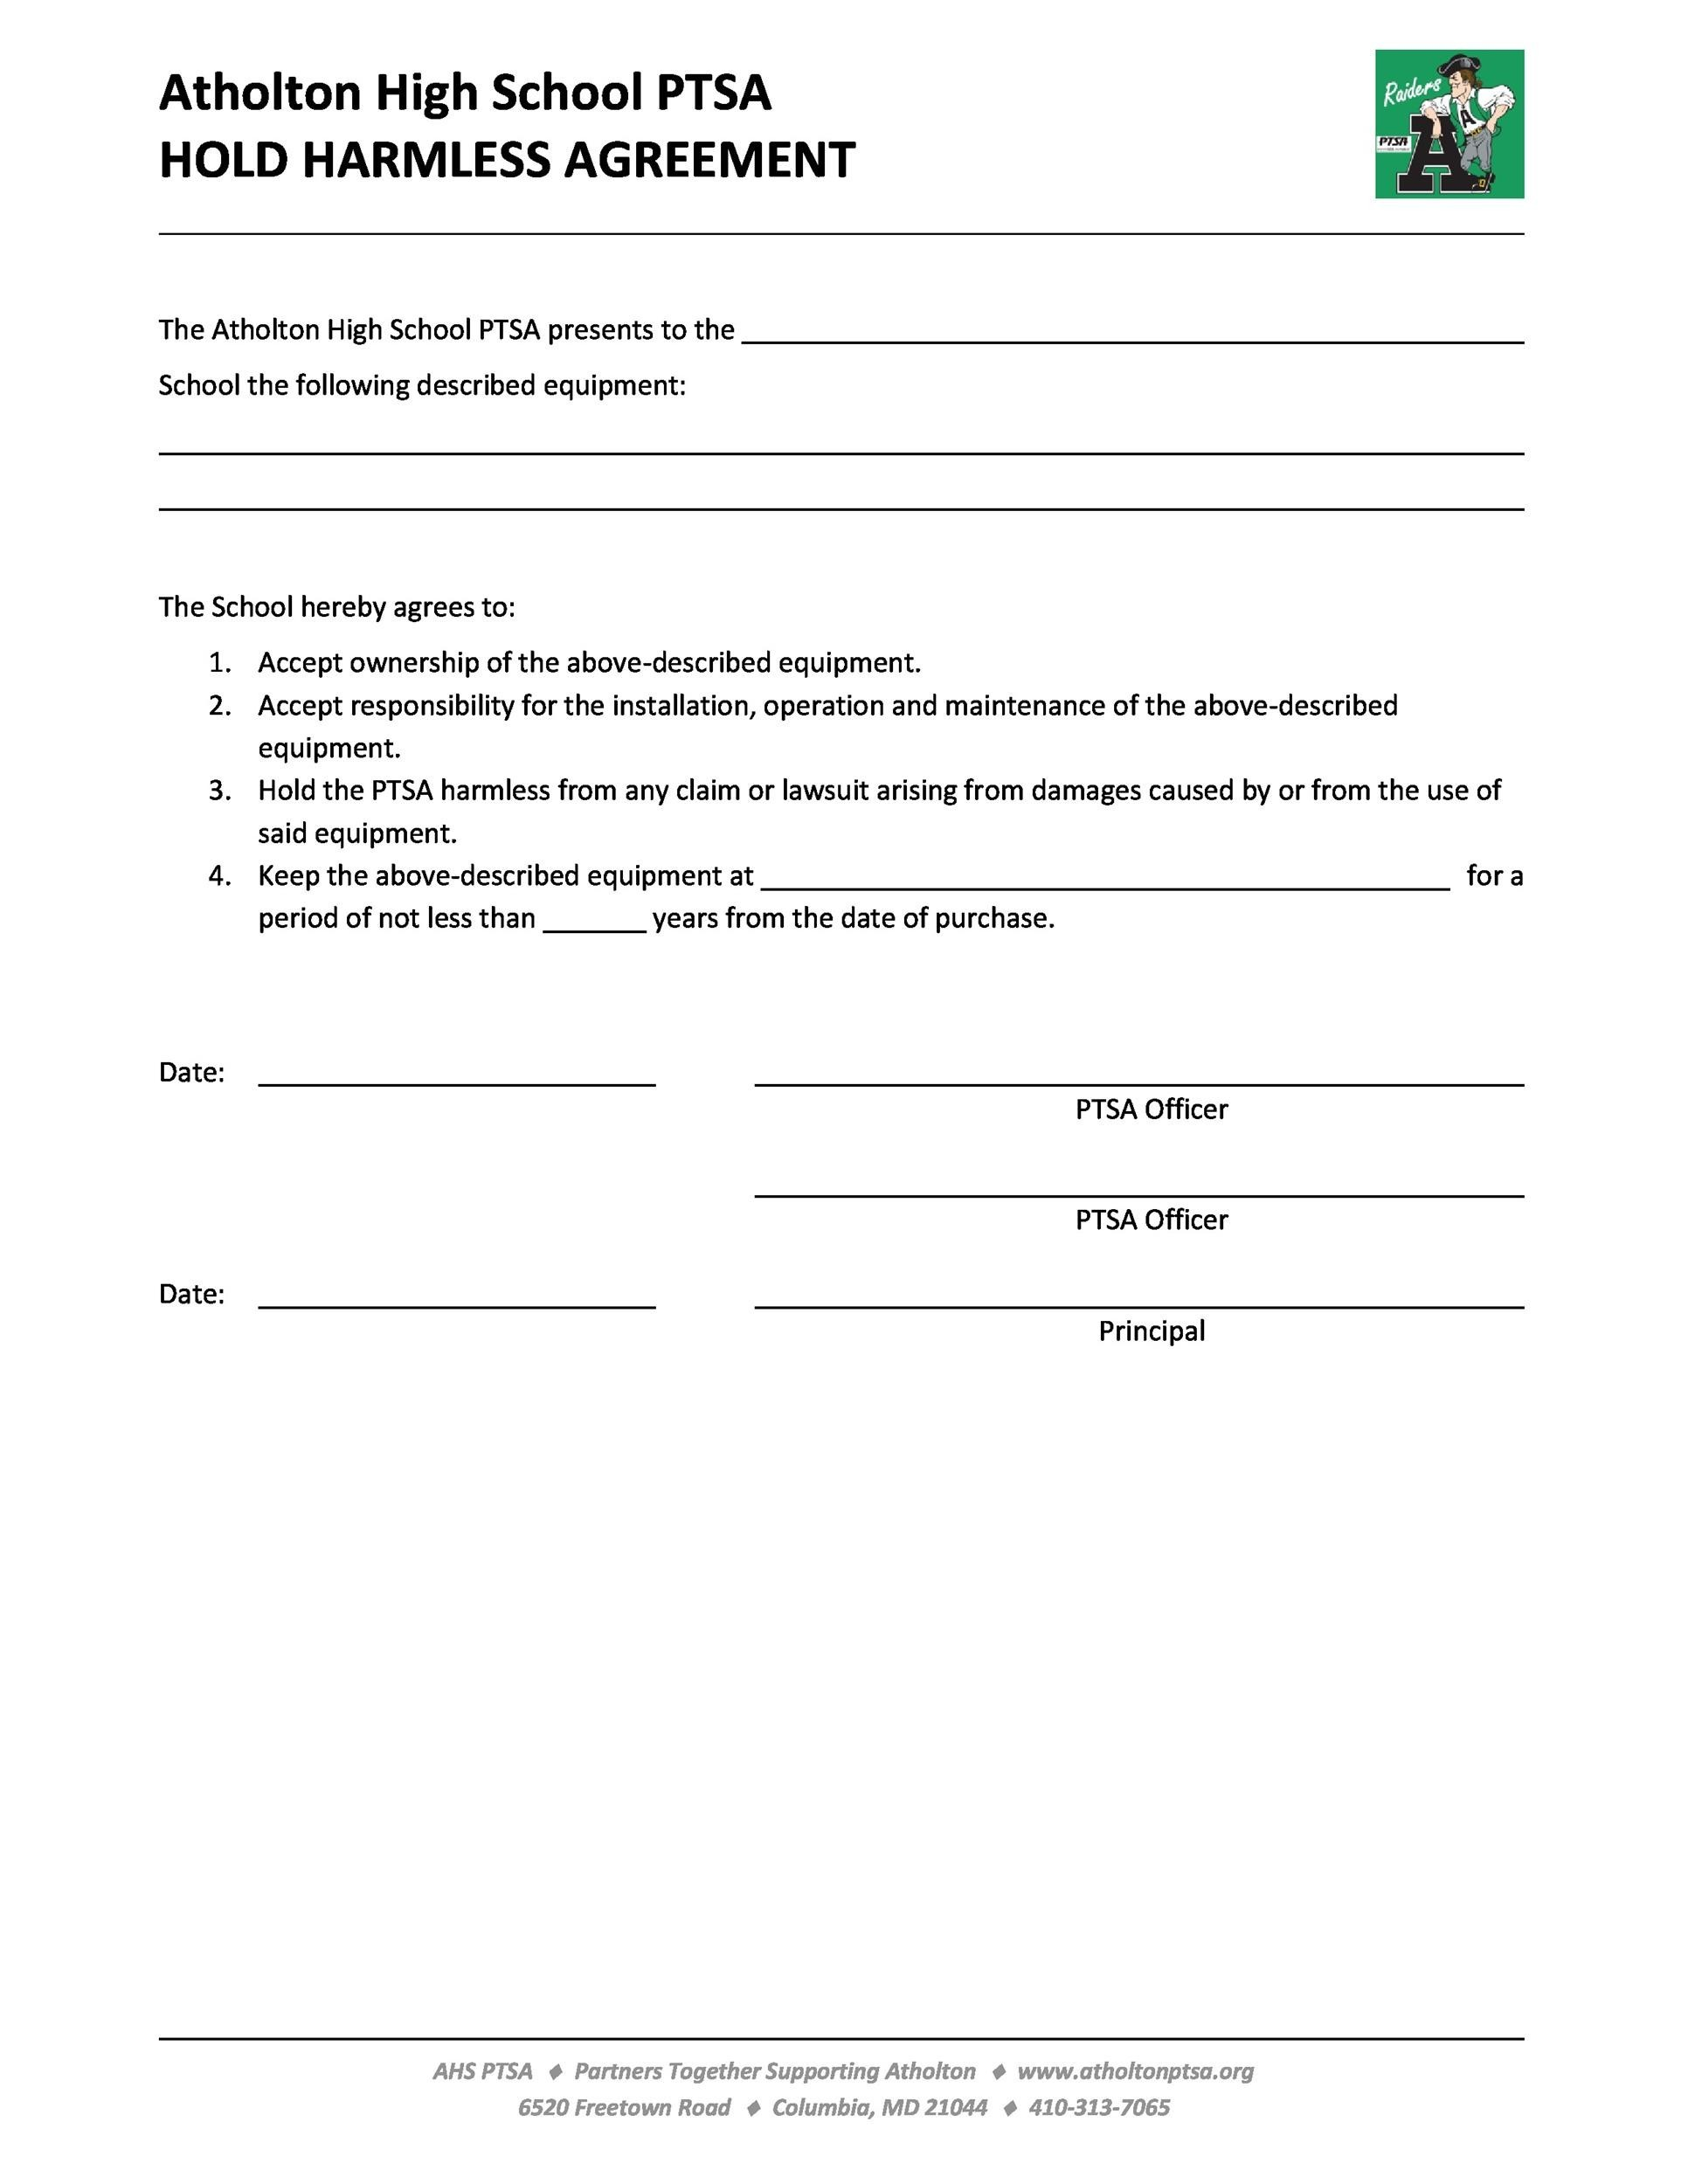 Free Hold Harmless Agreement Template 40